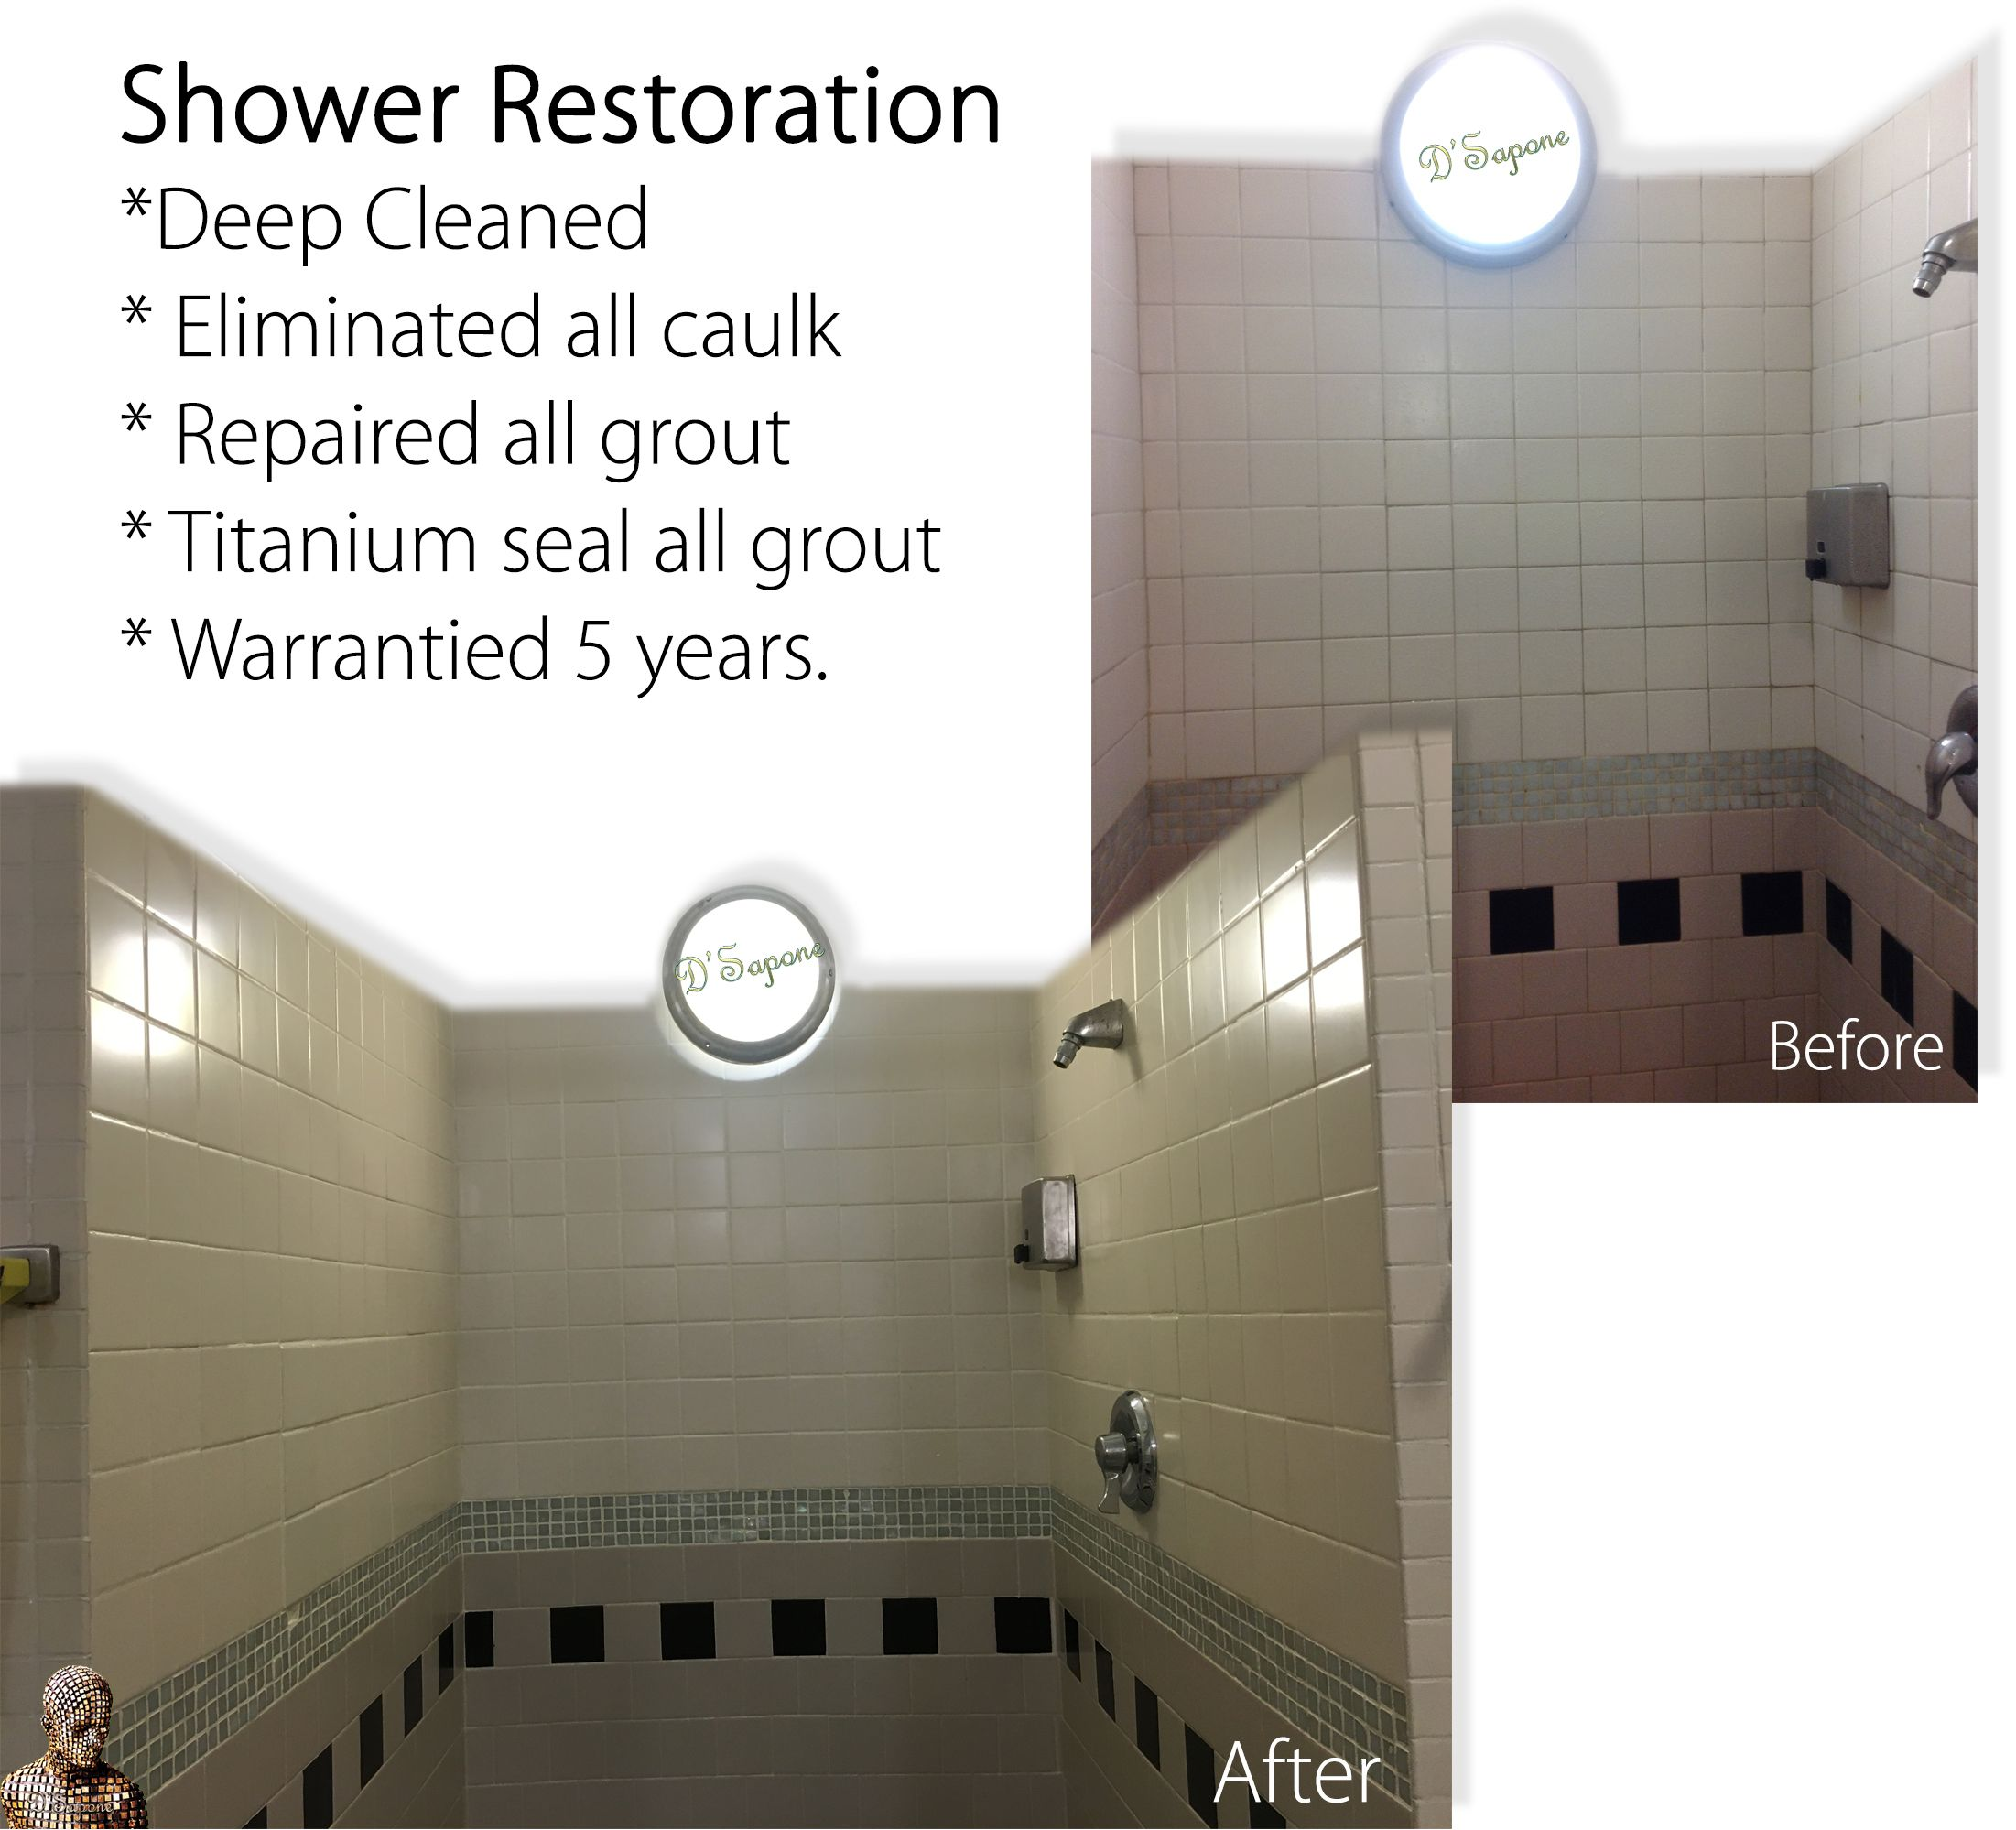 Notice in the image, how clean and sanitized the shower is after our ...